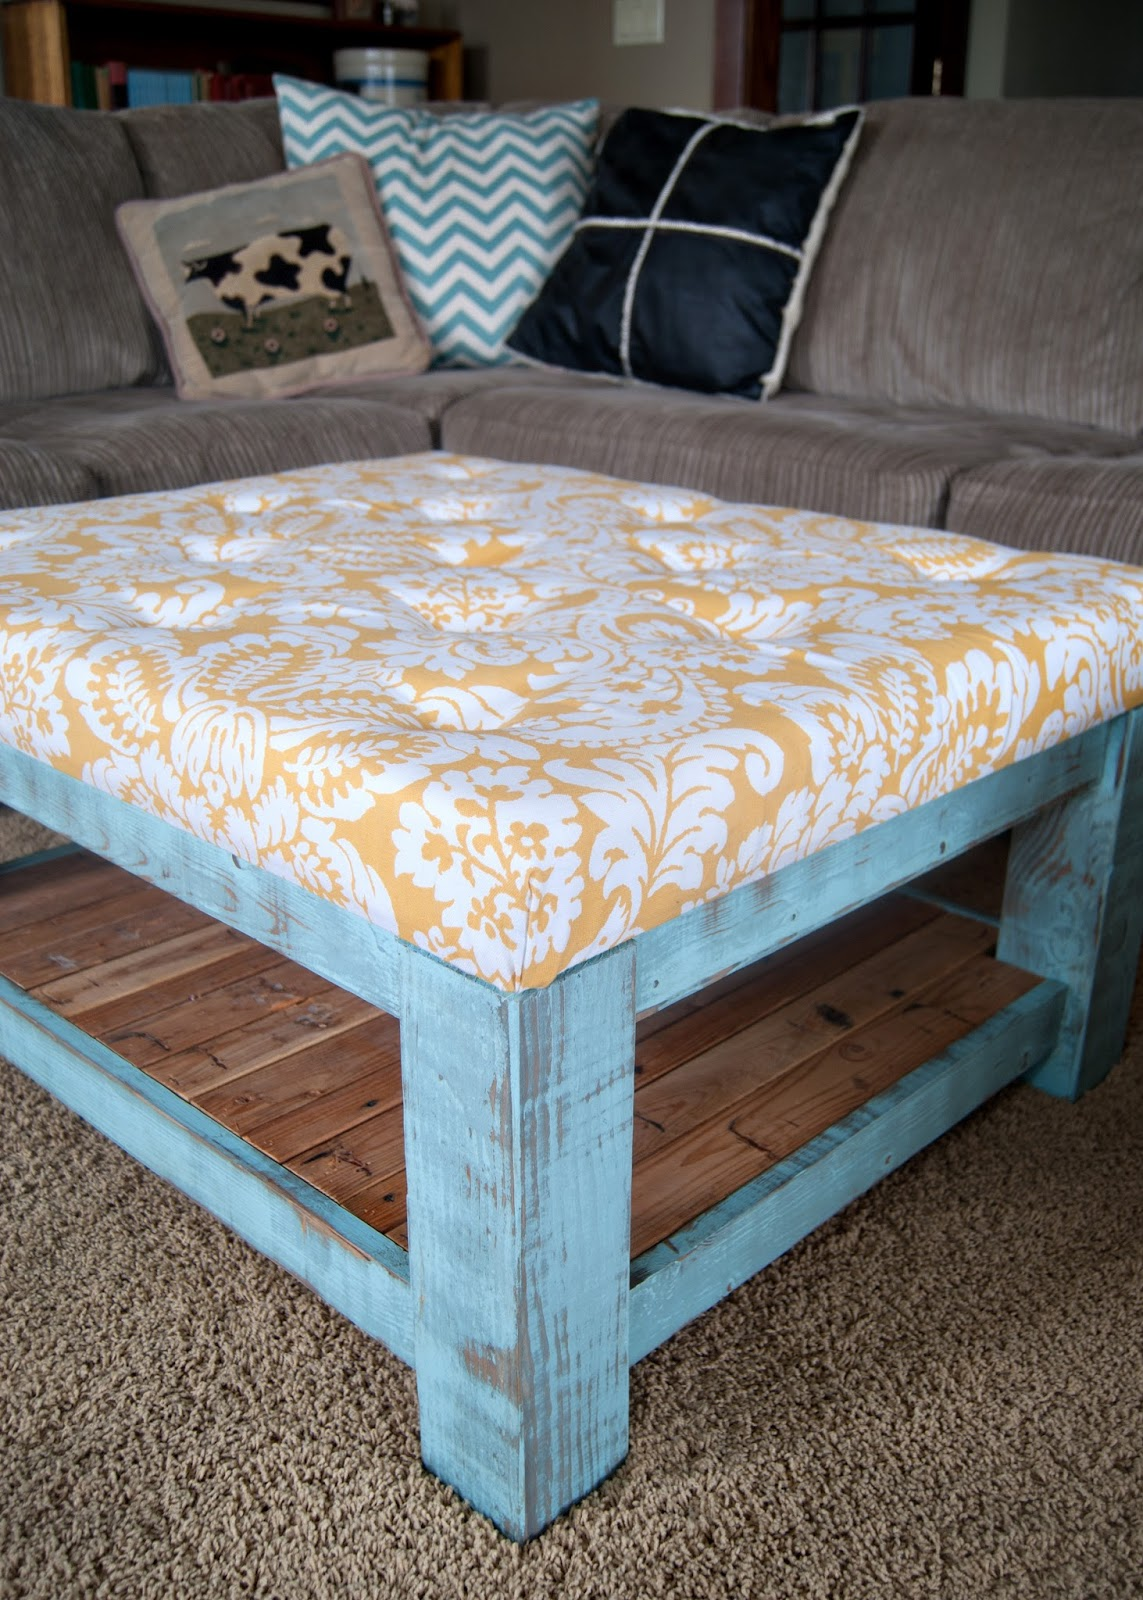 Diy ottoman for under 100 averie lane diy ottoman for - What is an ottoman ...